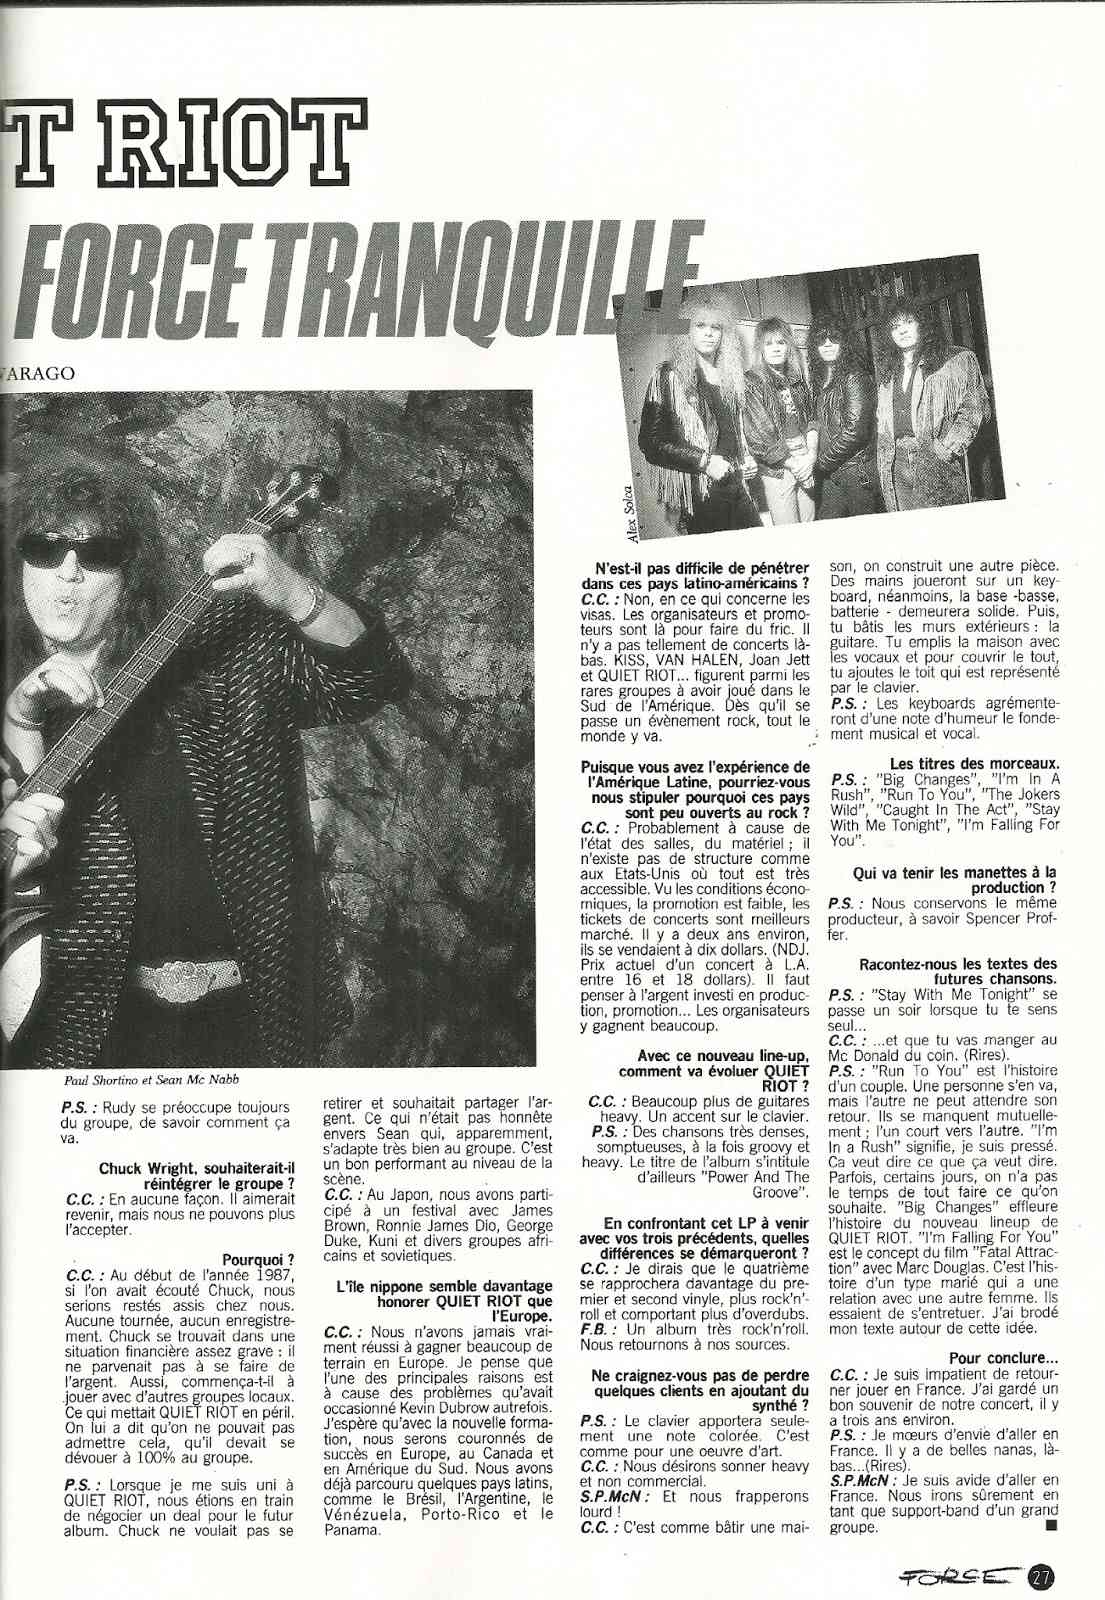 QUIET RIOT Retour de la Force Tranquille (HARD FORCE Septembre 1988) Archive à lire Numyri47